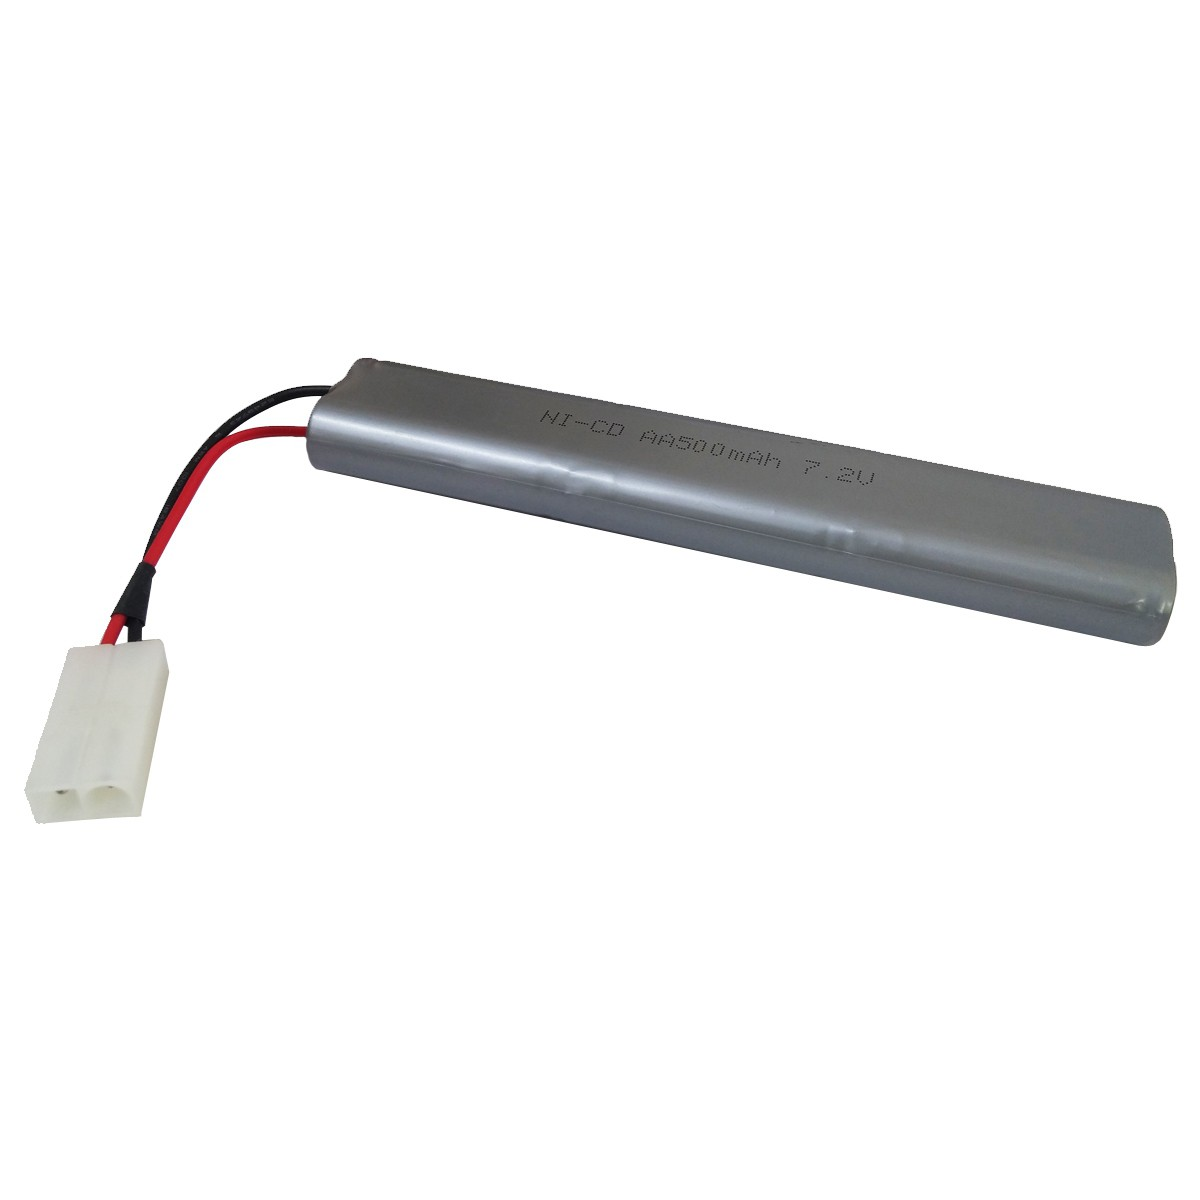 Batteria Ni-Cd 7.2V 500 mAh per Softair Double Eagle M83A2 M83B2 M85